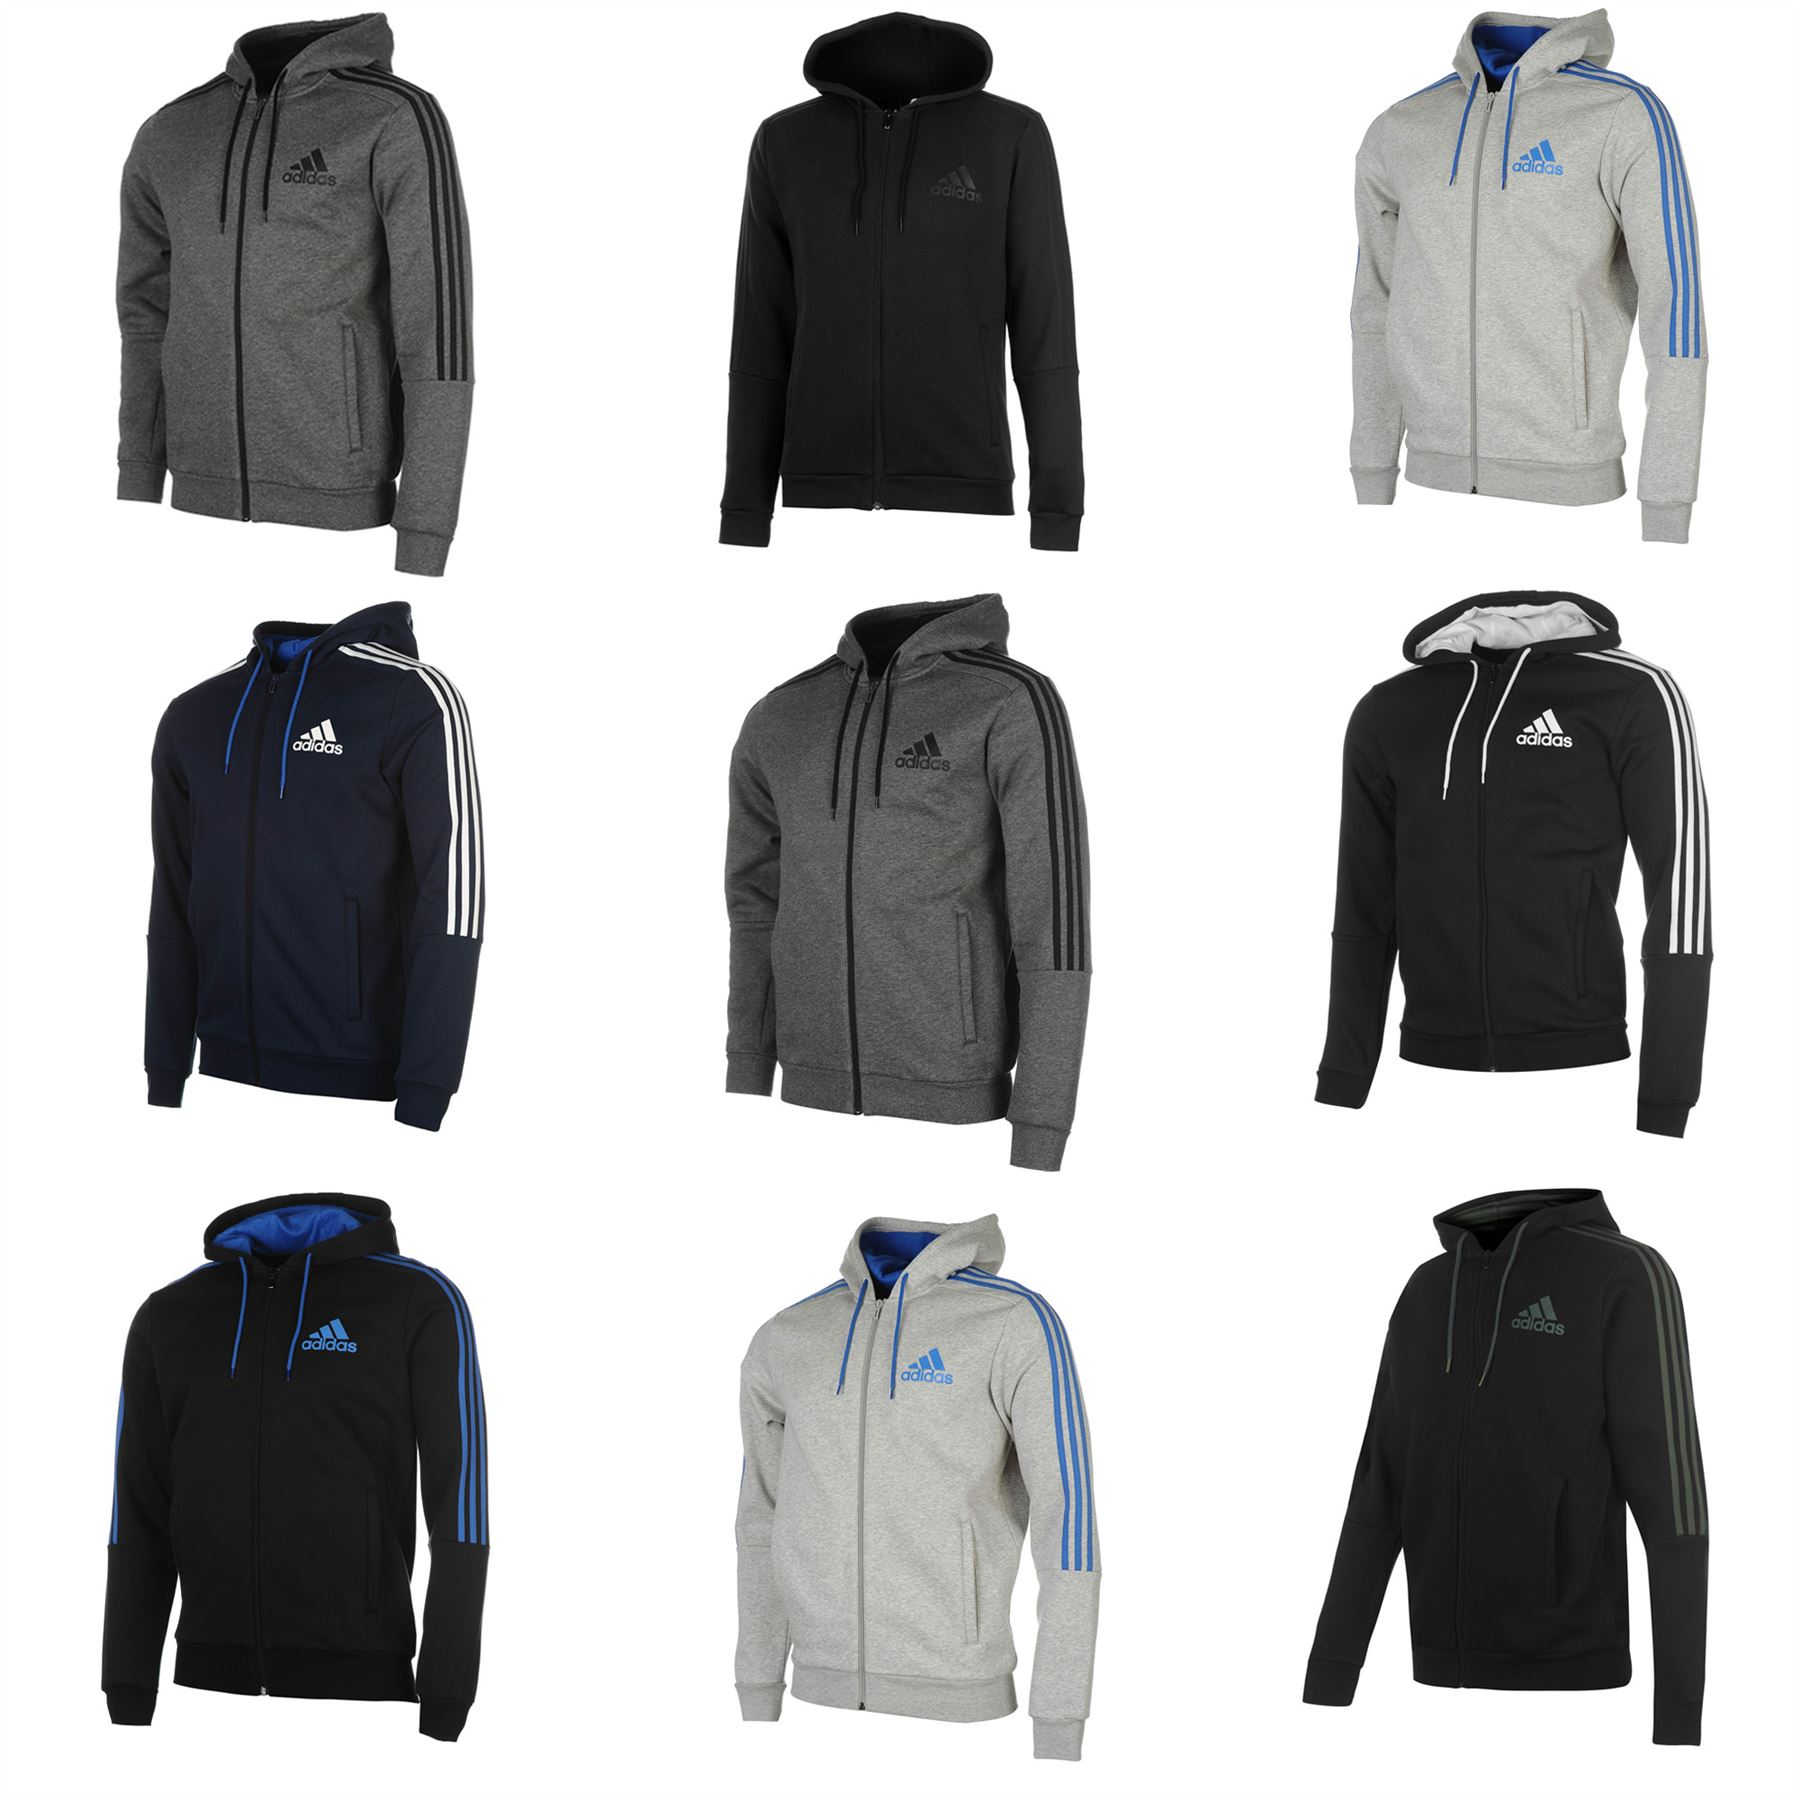 Details about adidas 3 Stripes Full Zip Hoody Jacket Mens Hoodie Sweatshirt  Sweater Hooded Top